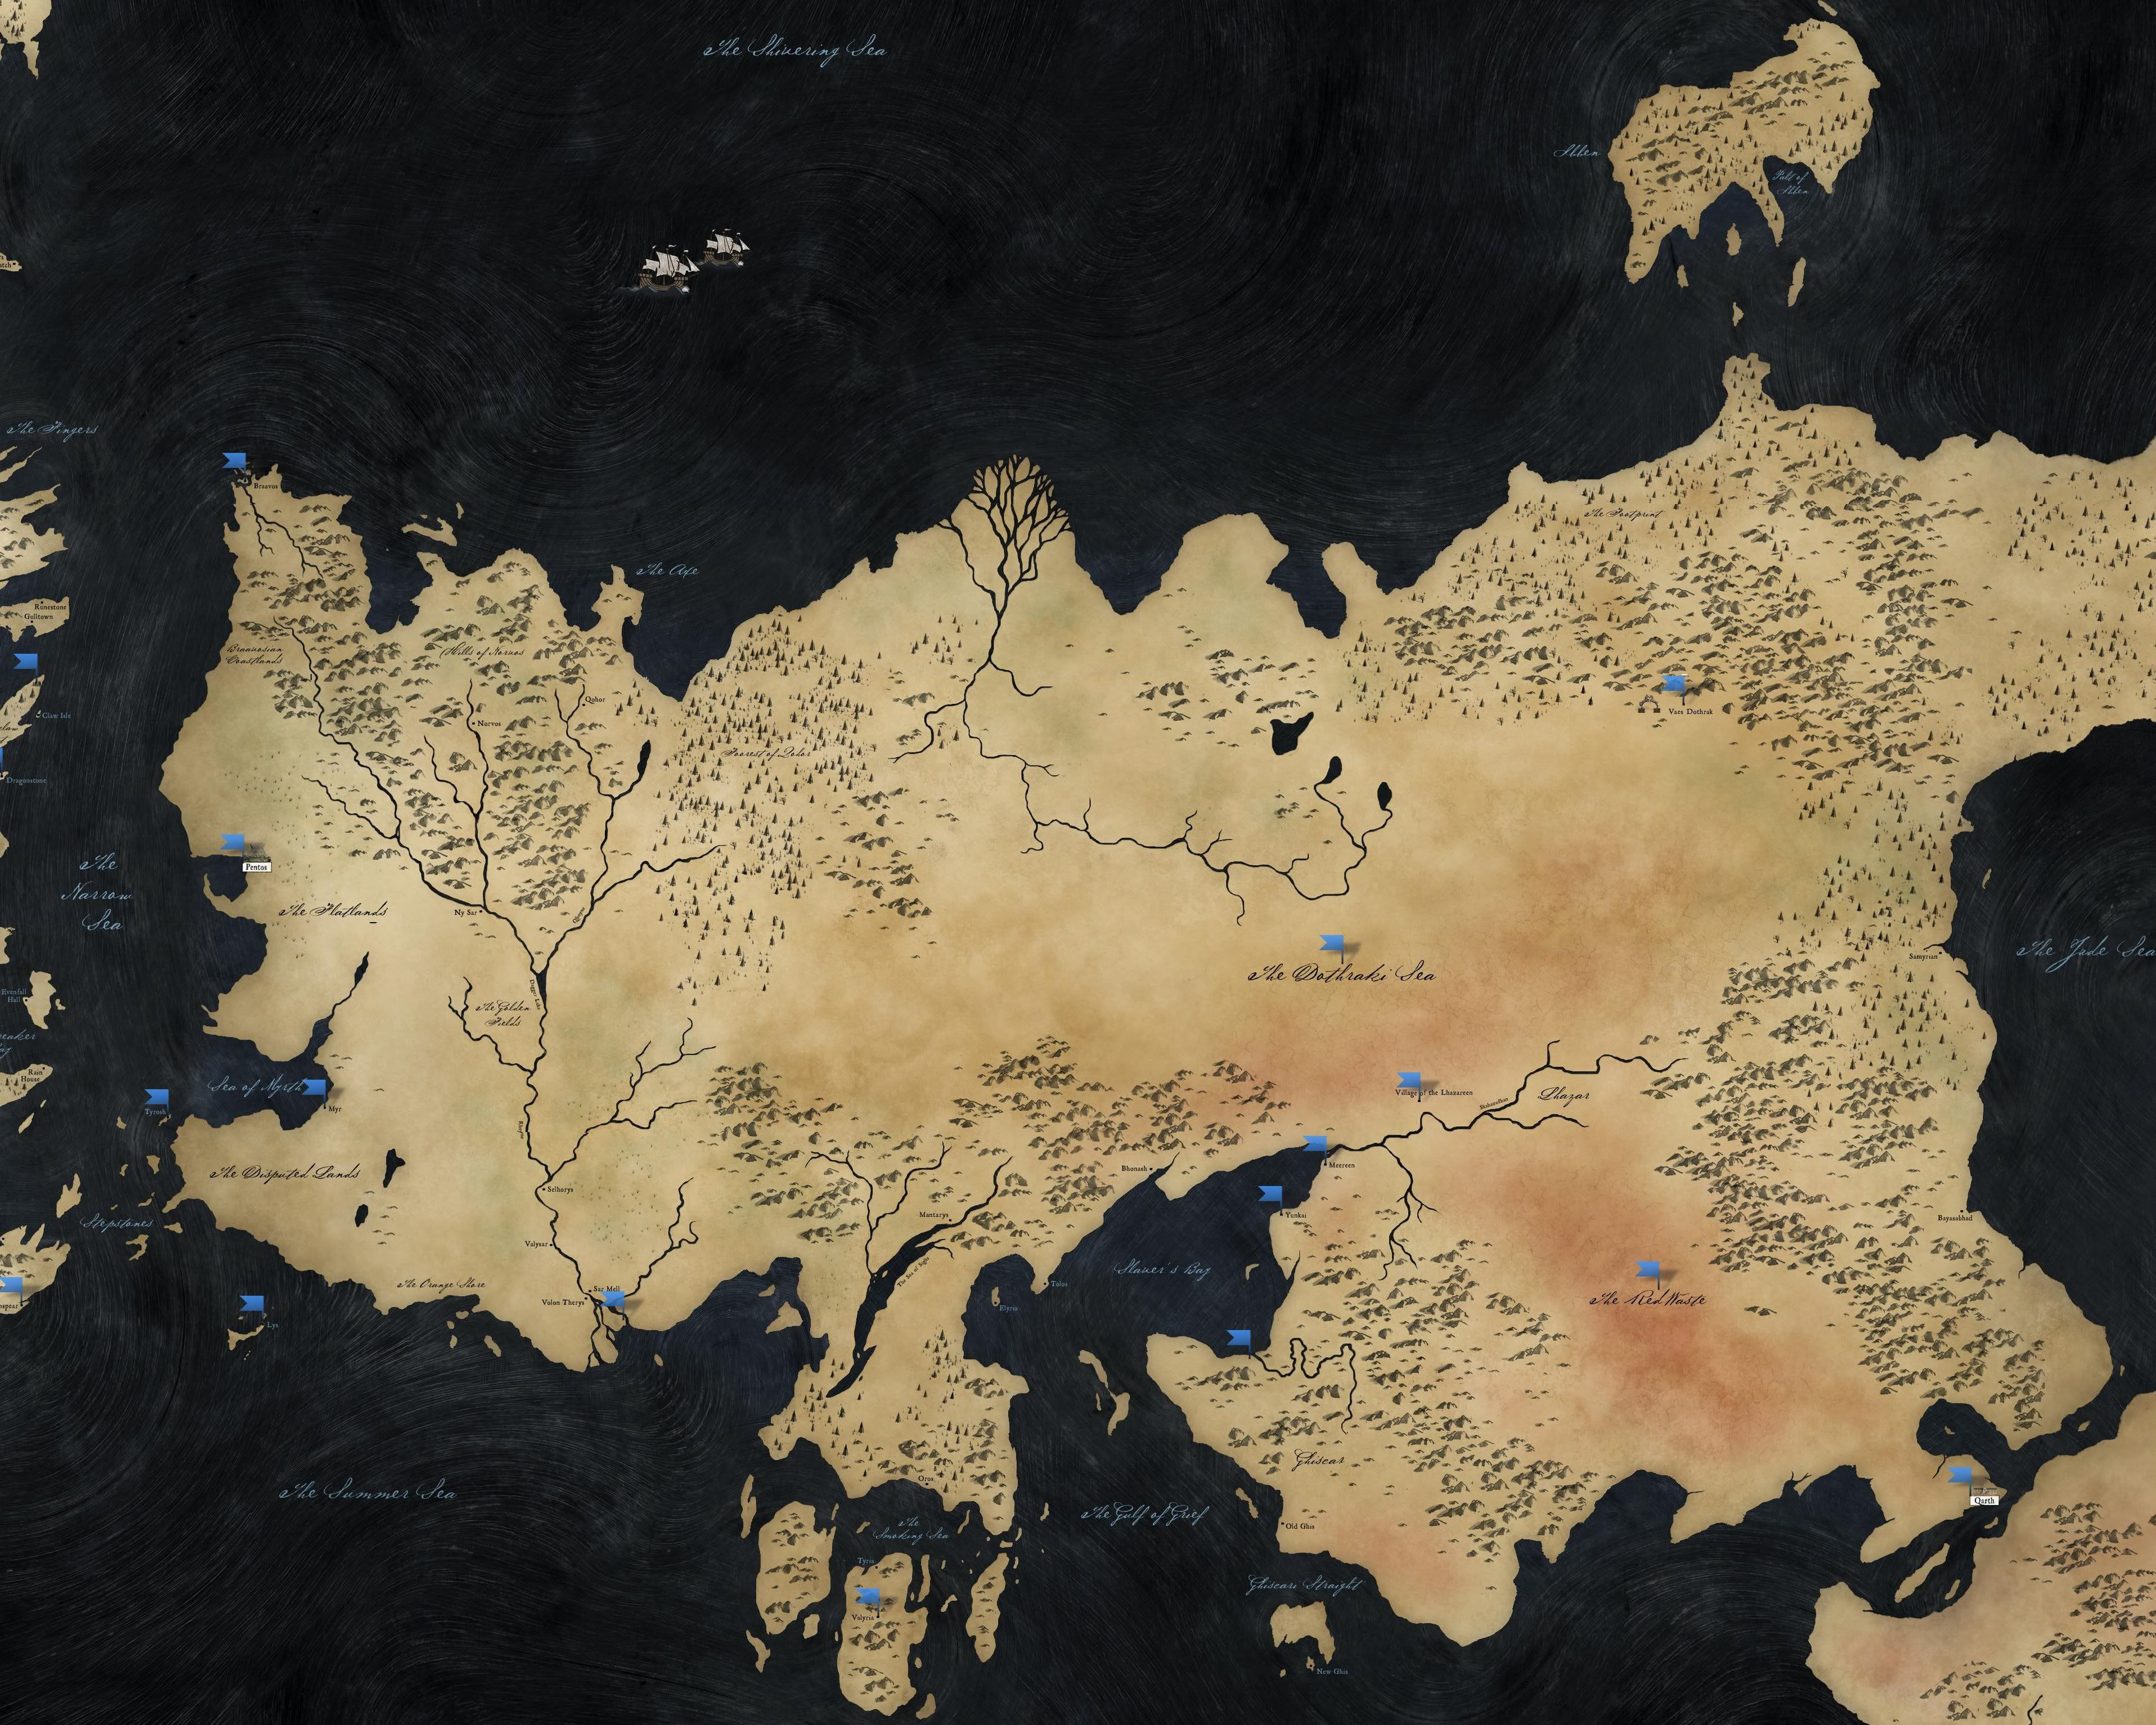 game of thrones map - Google Search | Trans Siberian Railway ... Game Of Thrones Map Google on google map skins, google map arrow, google map dallas, google map scandal, google map rome, google map atlantis, google map nashville, google map fargo, google map zoo, google map united states,